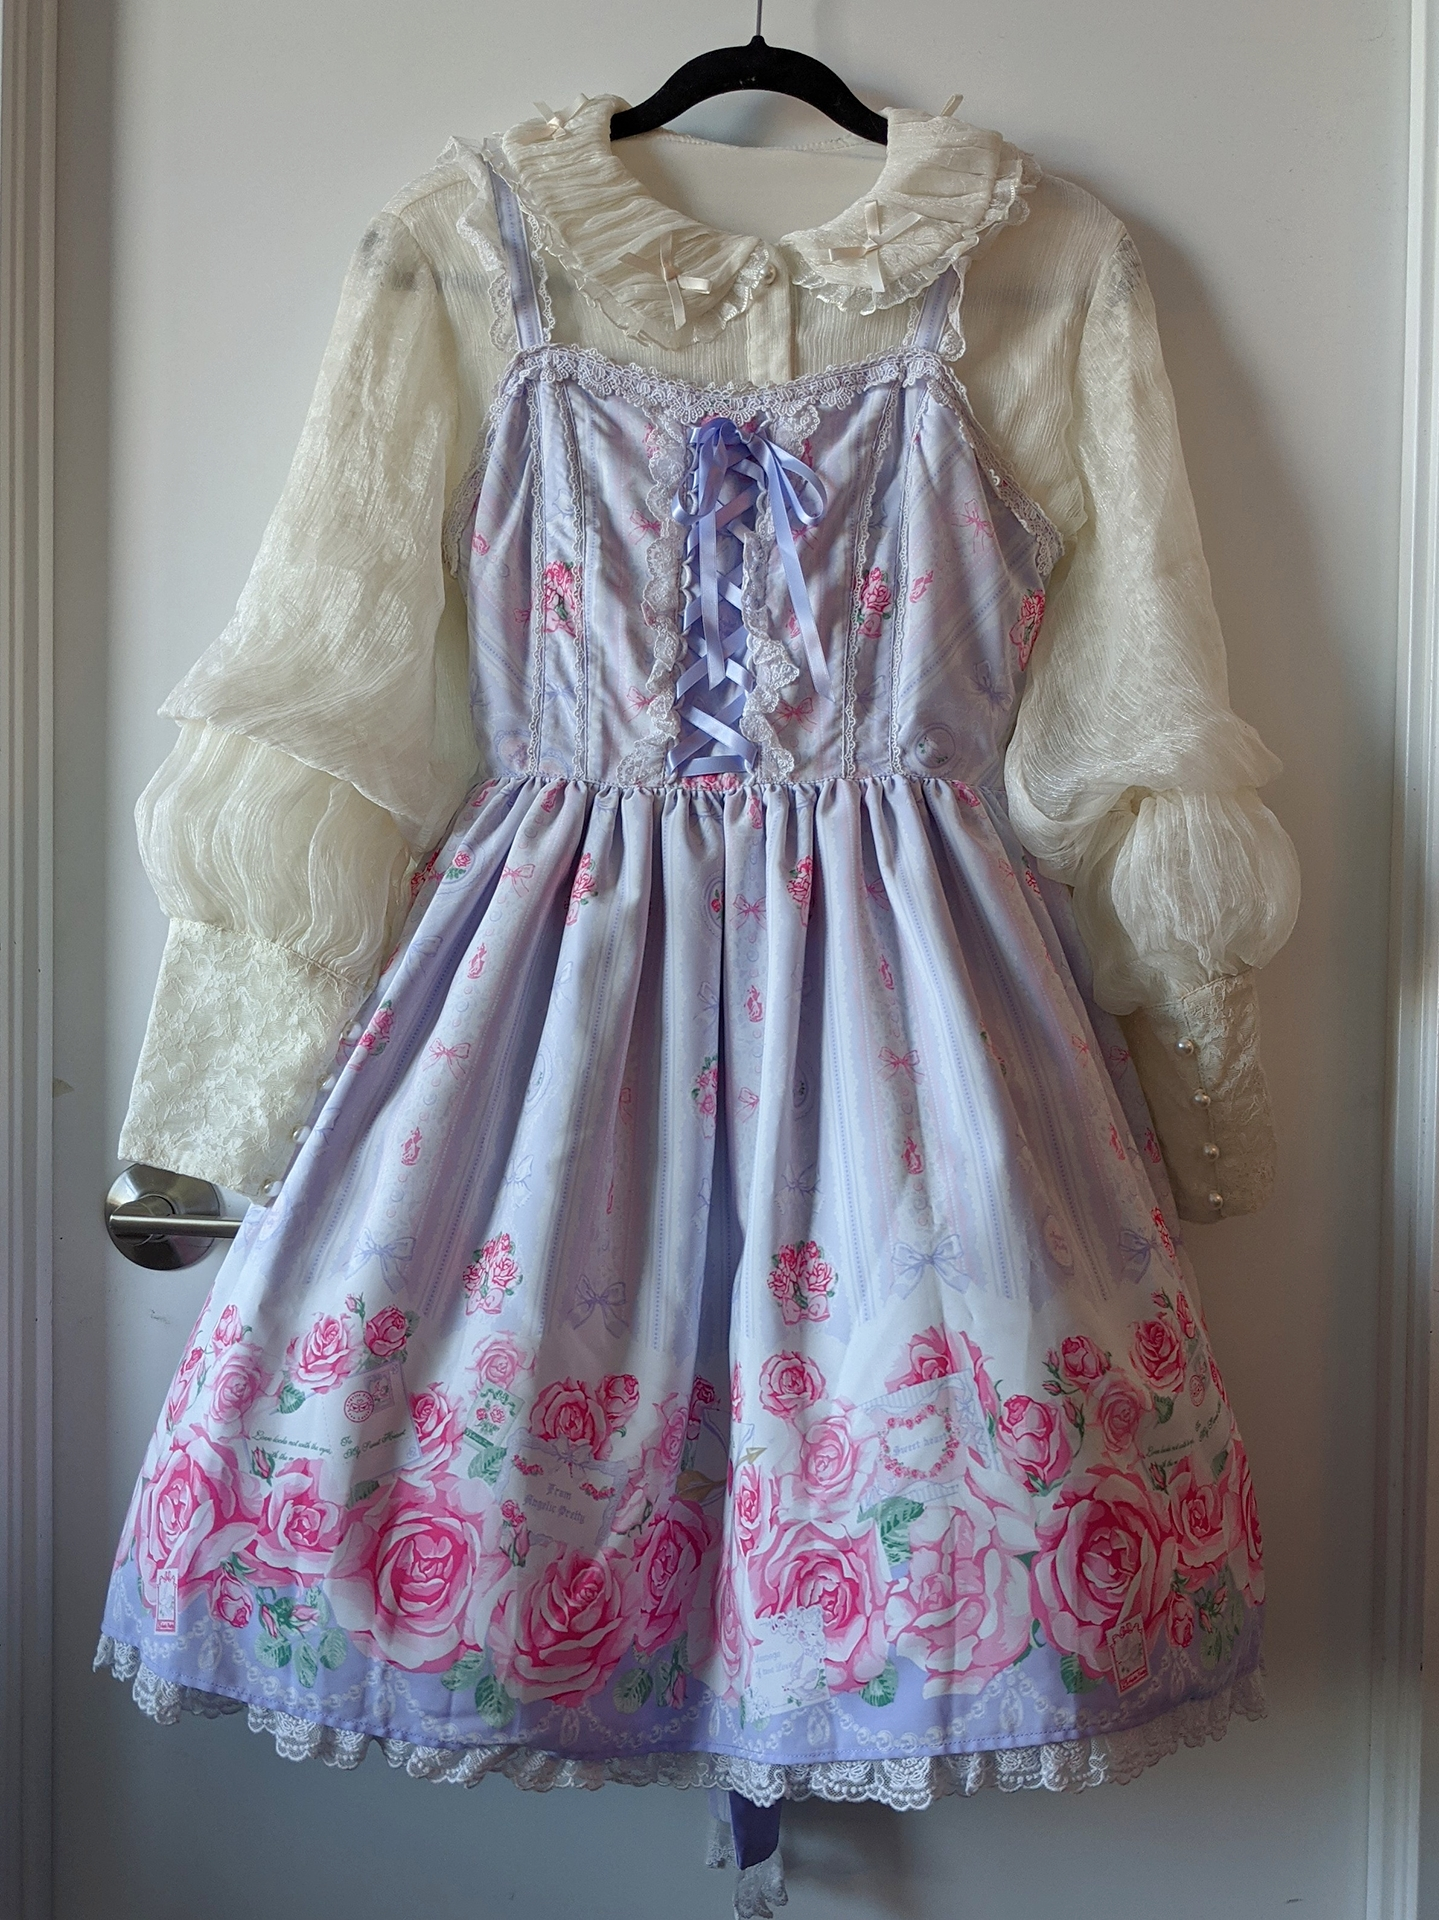 Romantic Rose Letter by Angelic Pretty, blouse from Taobao